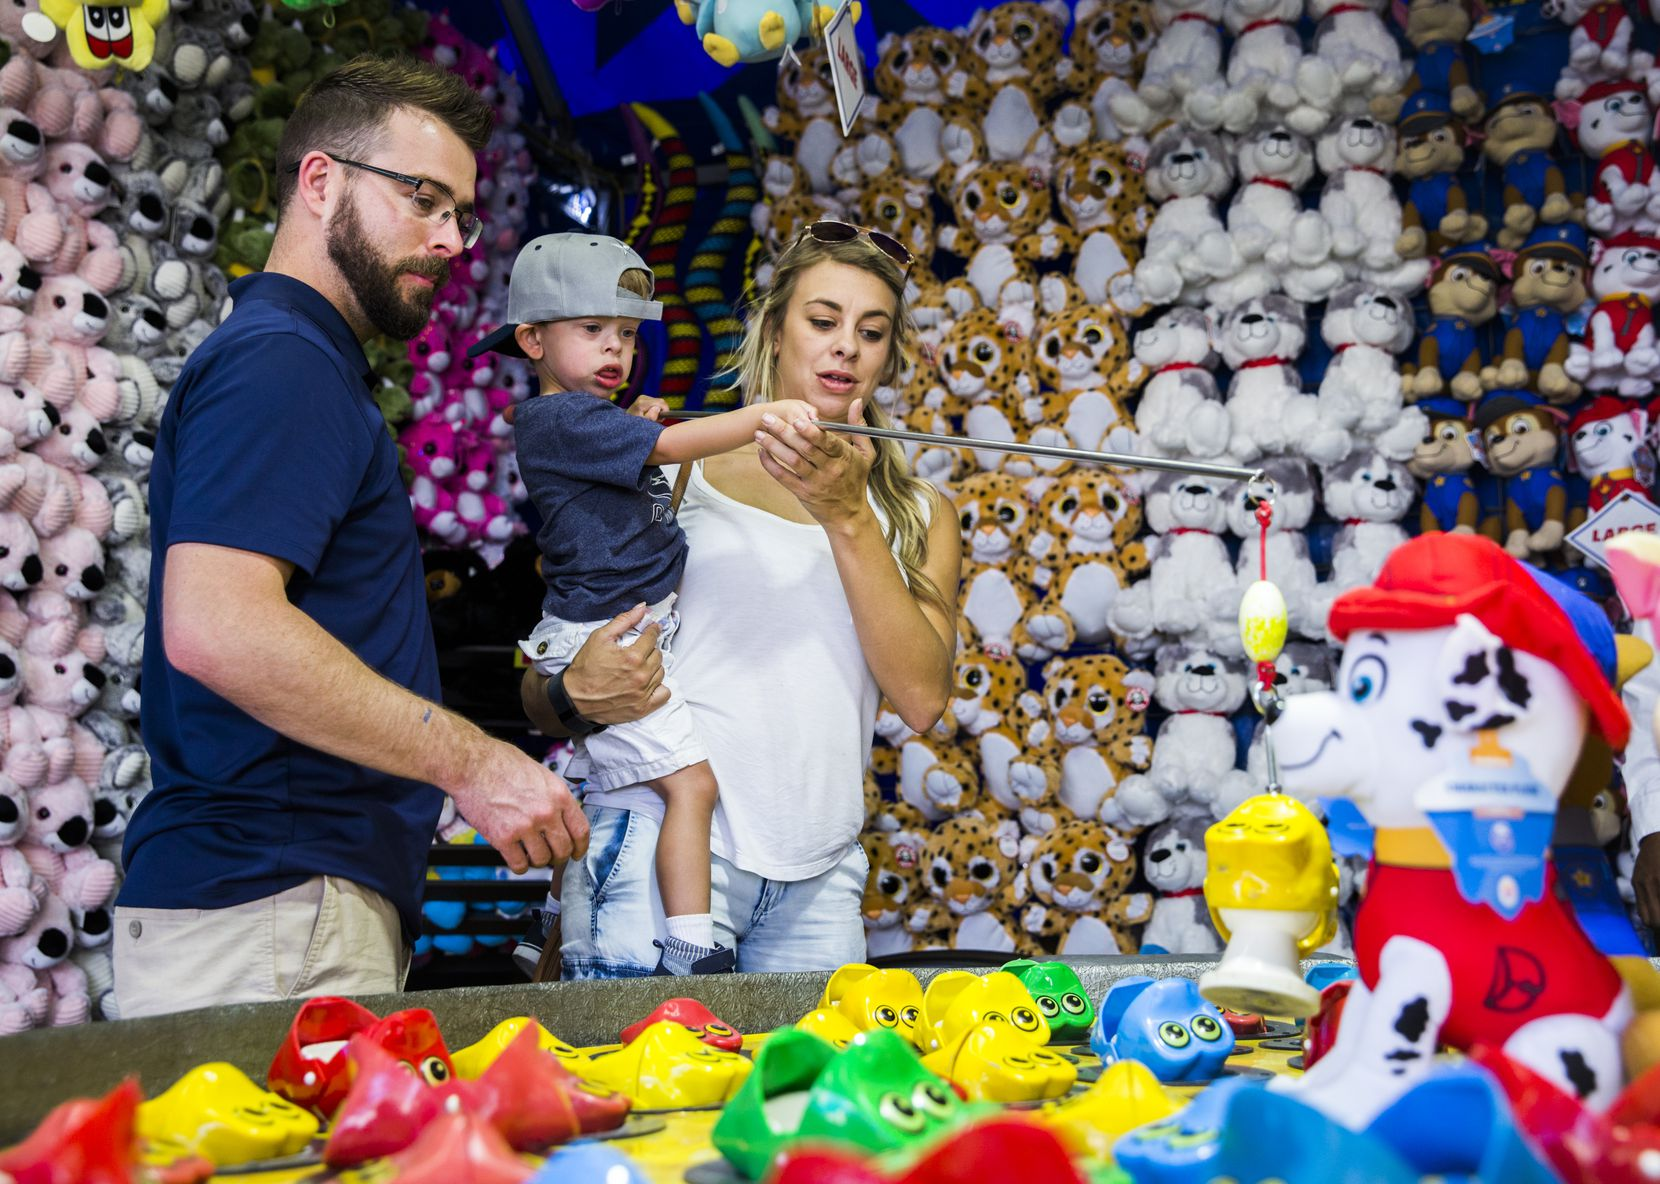 Natalie Janacek and Dustin Guess helped Luke Janacek, who was 3 years old at the time, as he played a carnival game at the State Fair of Texas in September 2017.